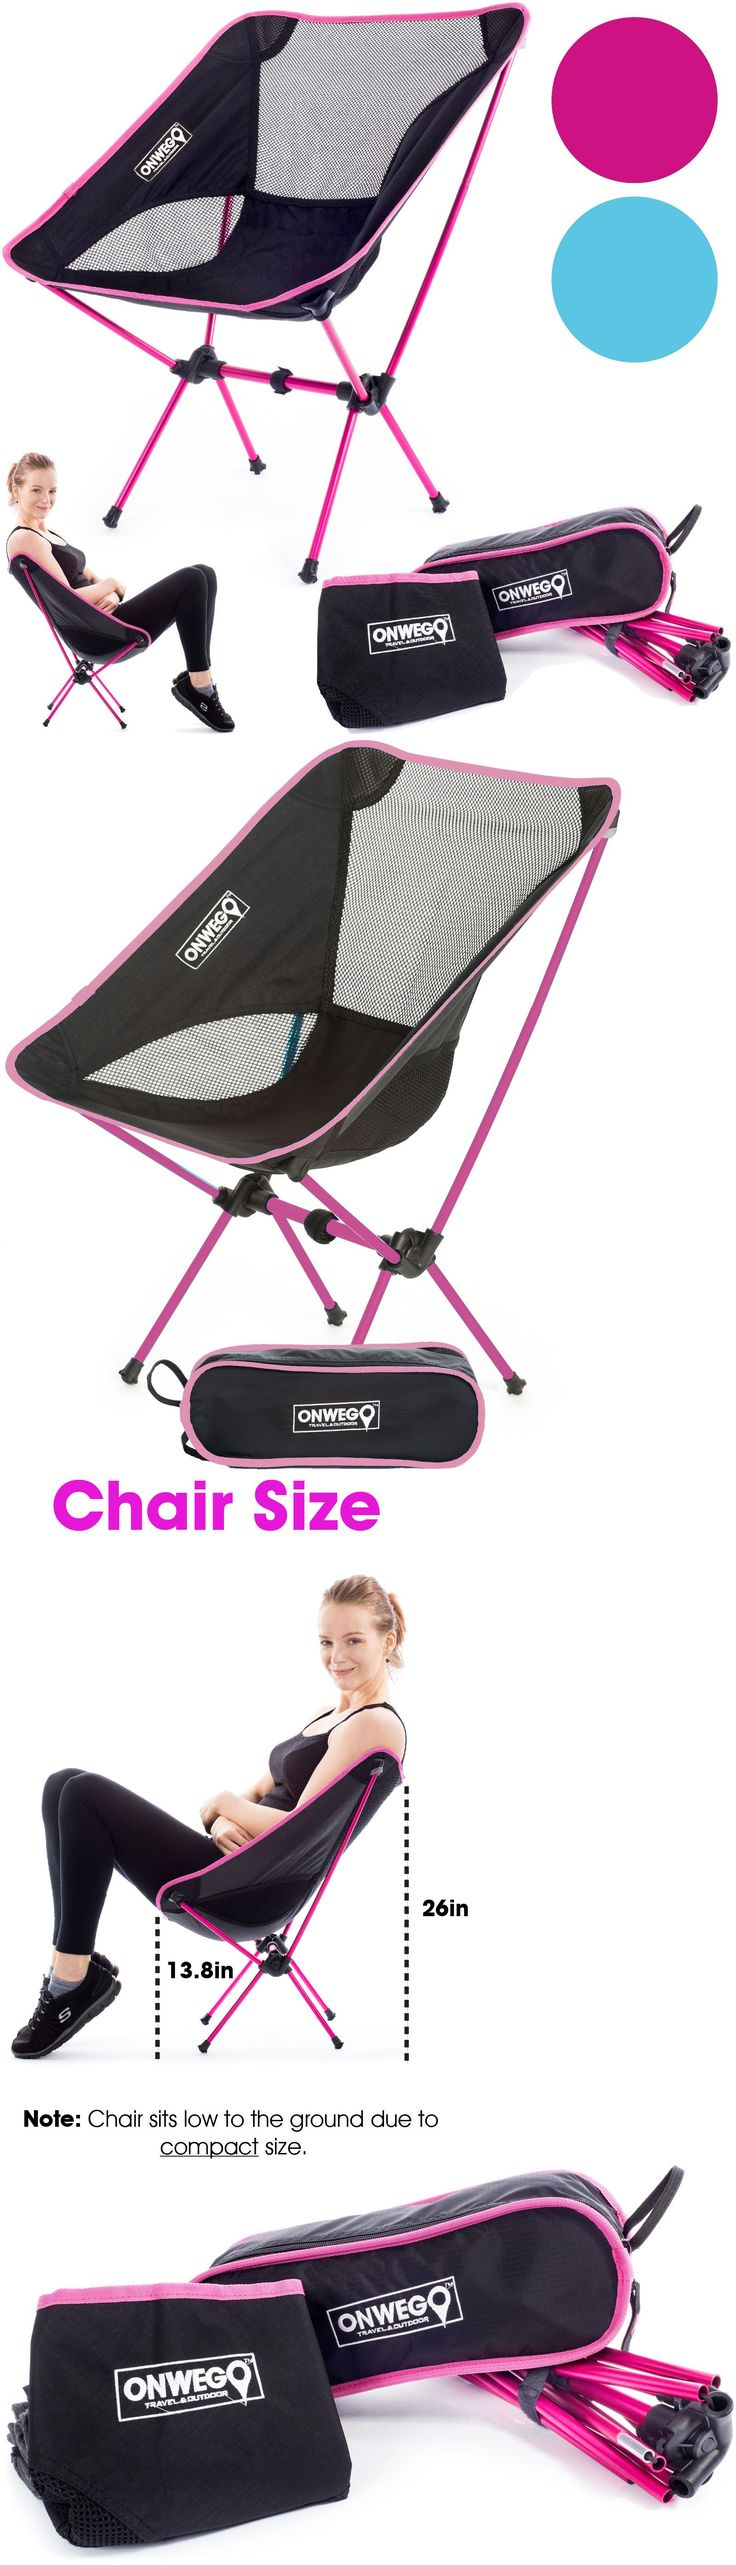 Jerry chair backpacking - Chairs And Seats 19985 Pink Camping Backpacking Chair Lightweight Durable Portable